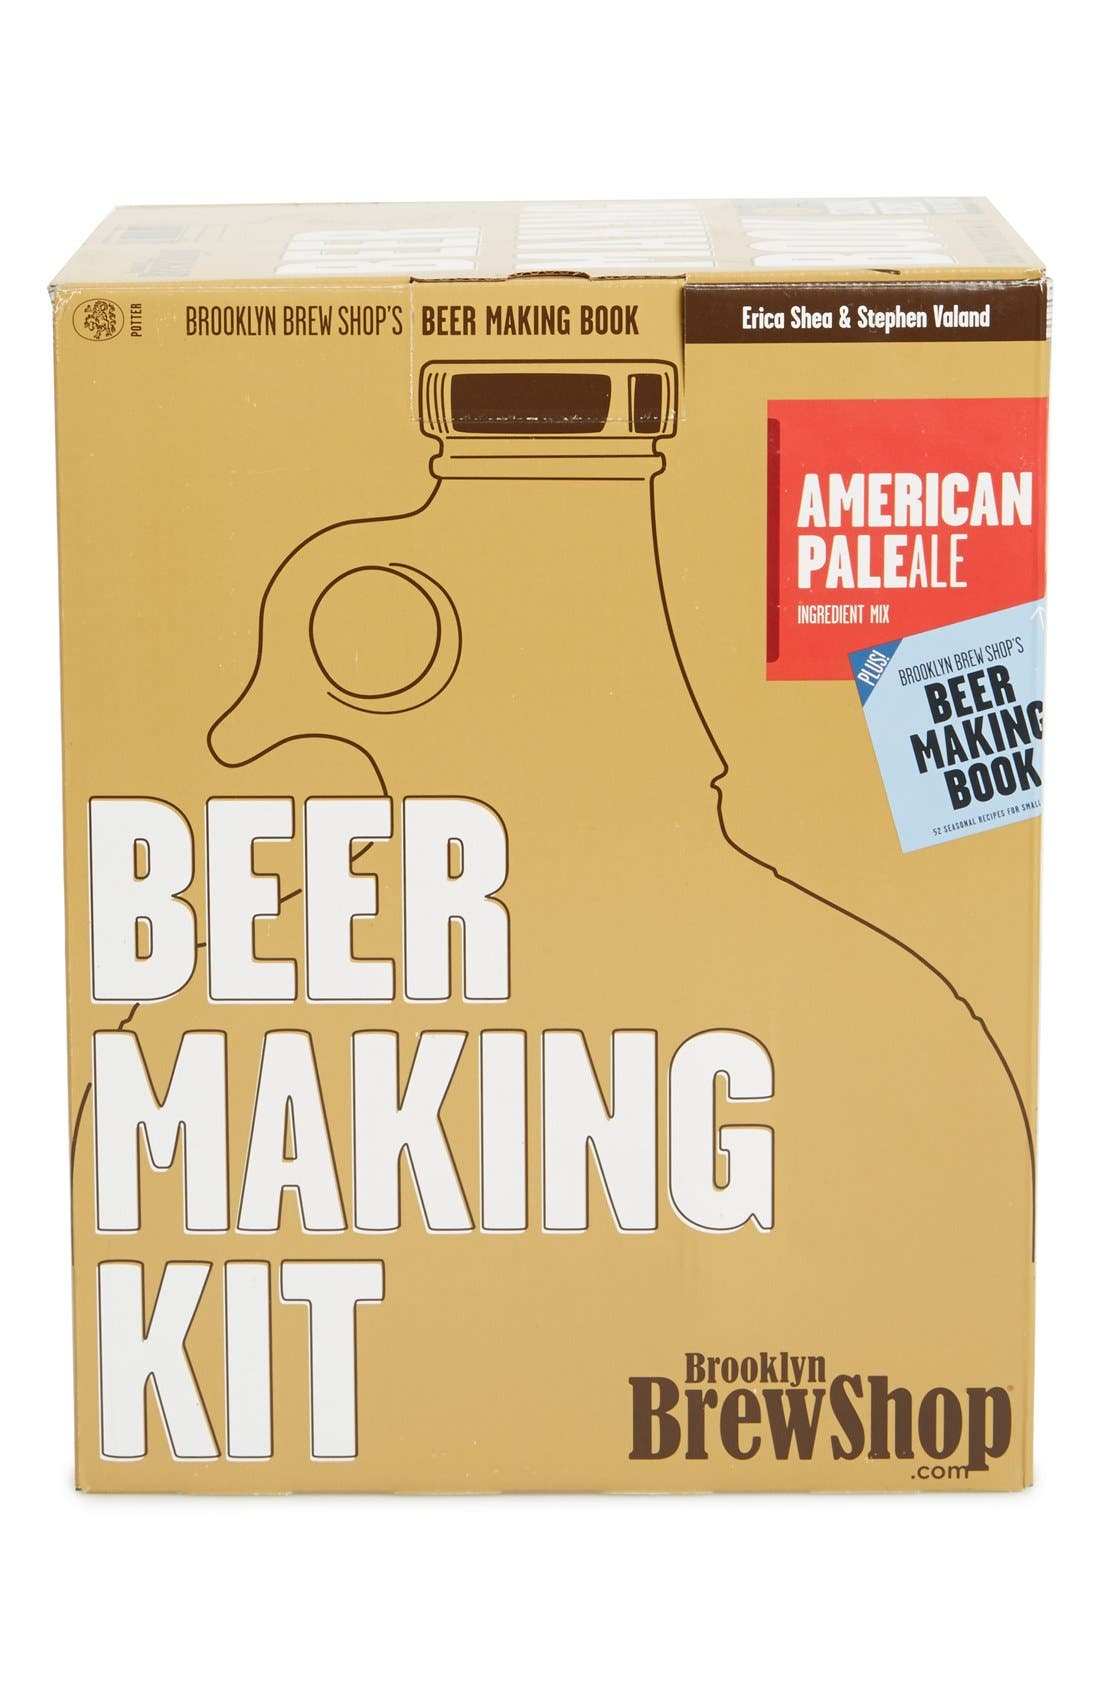 'American Pale Ale' One-Gallon Beer Making Kit with Recipe Book,                             Main thumbnail 1, color,                             400